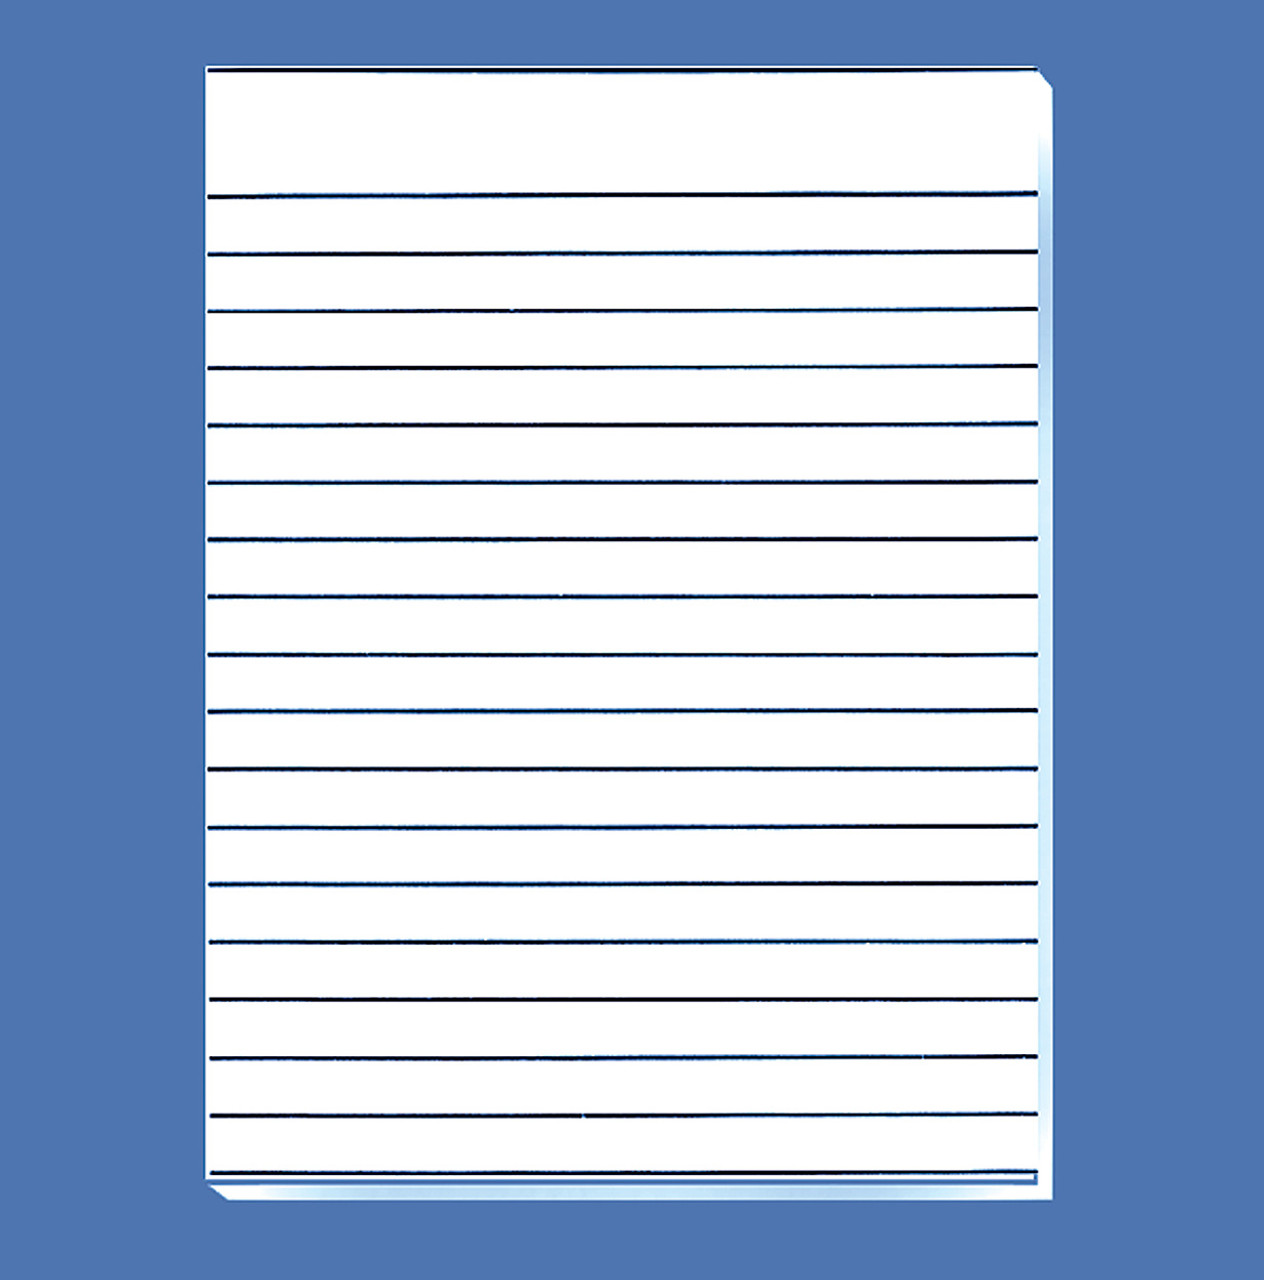 "Bold Line Writing Paper, 1/2"" Spaces, Double-Sided"